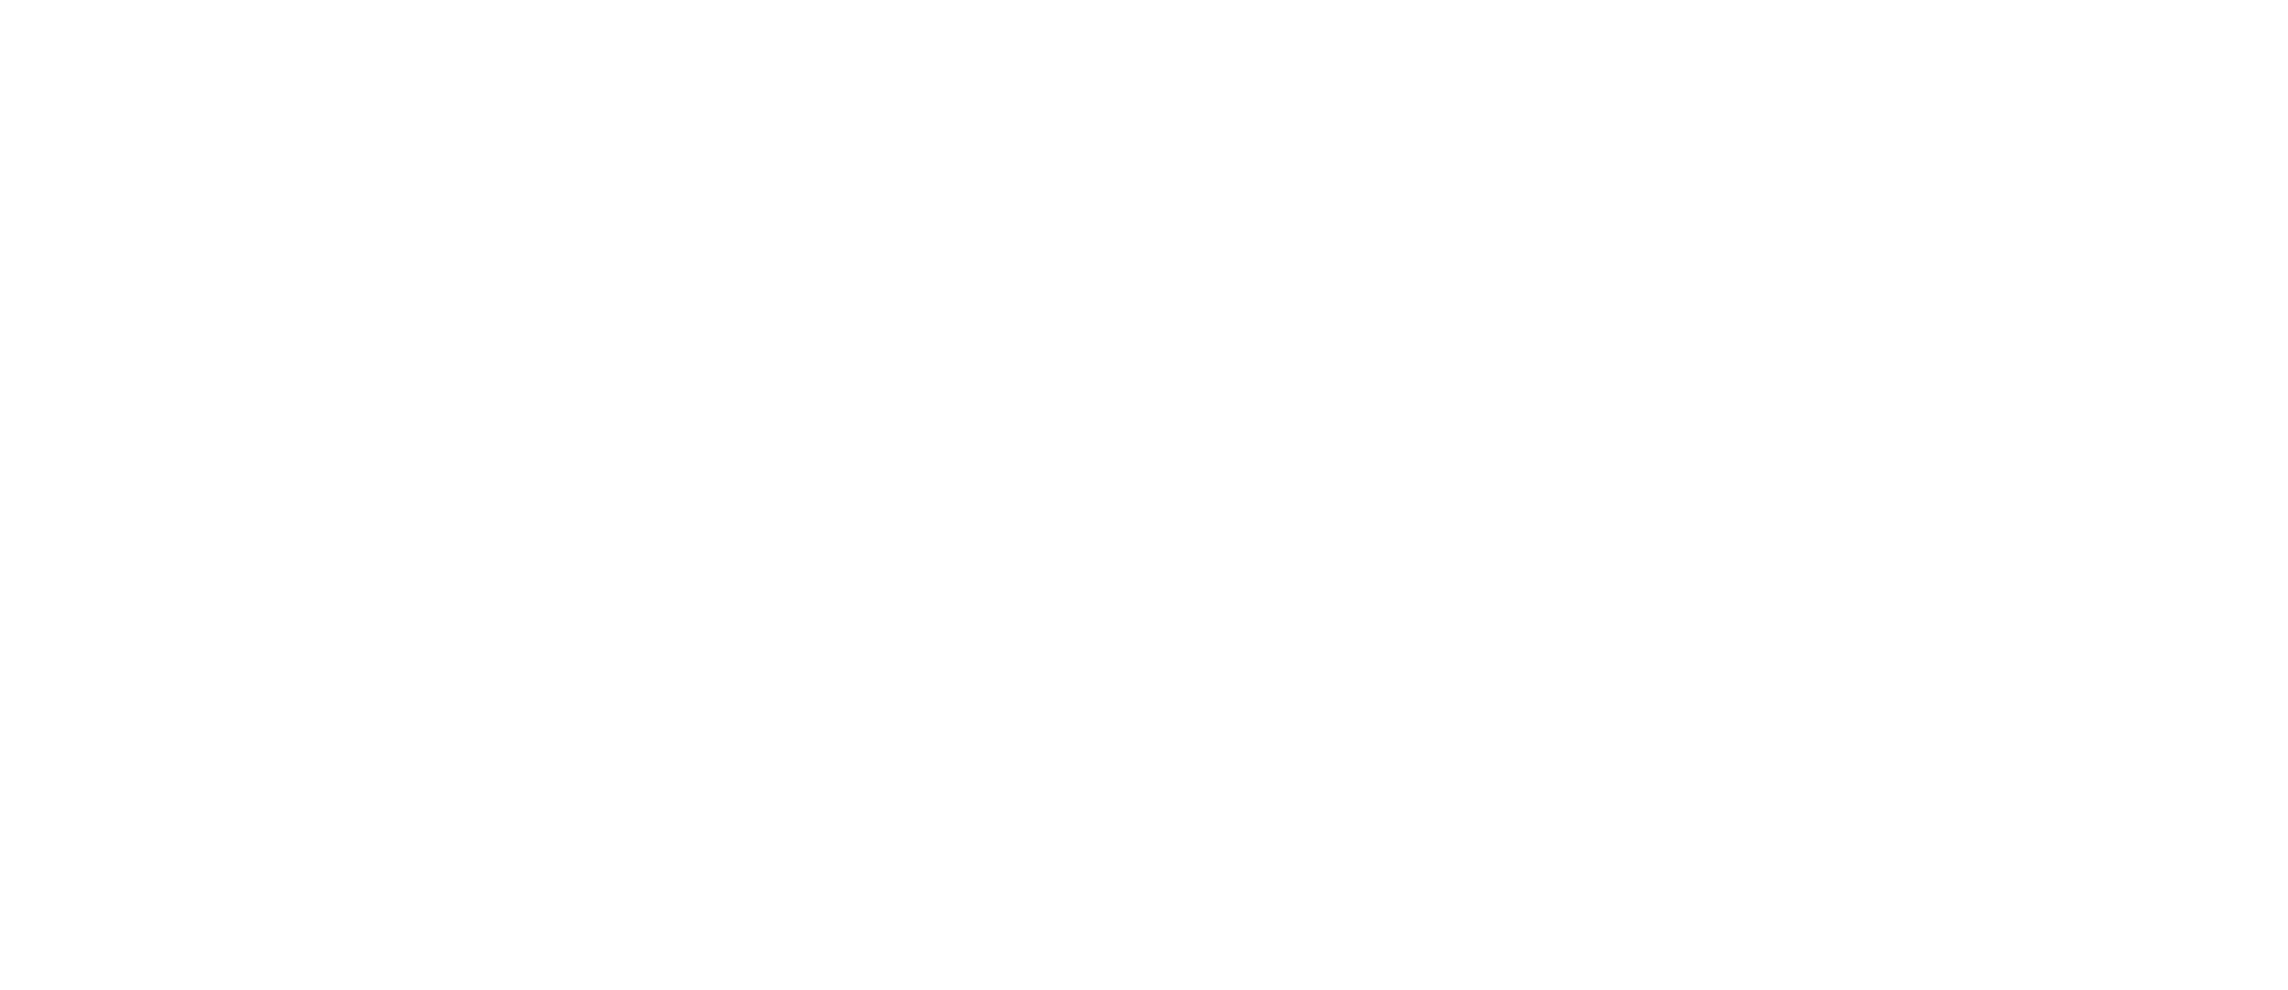 House Logo.png